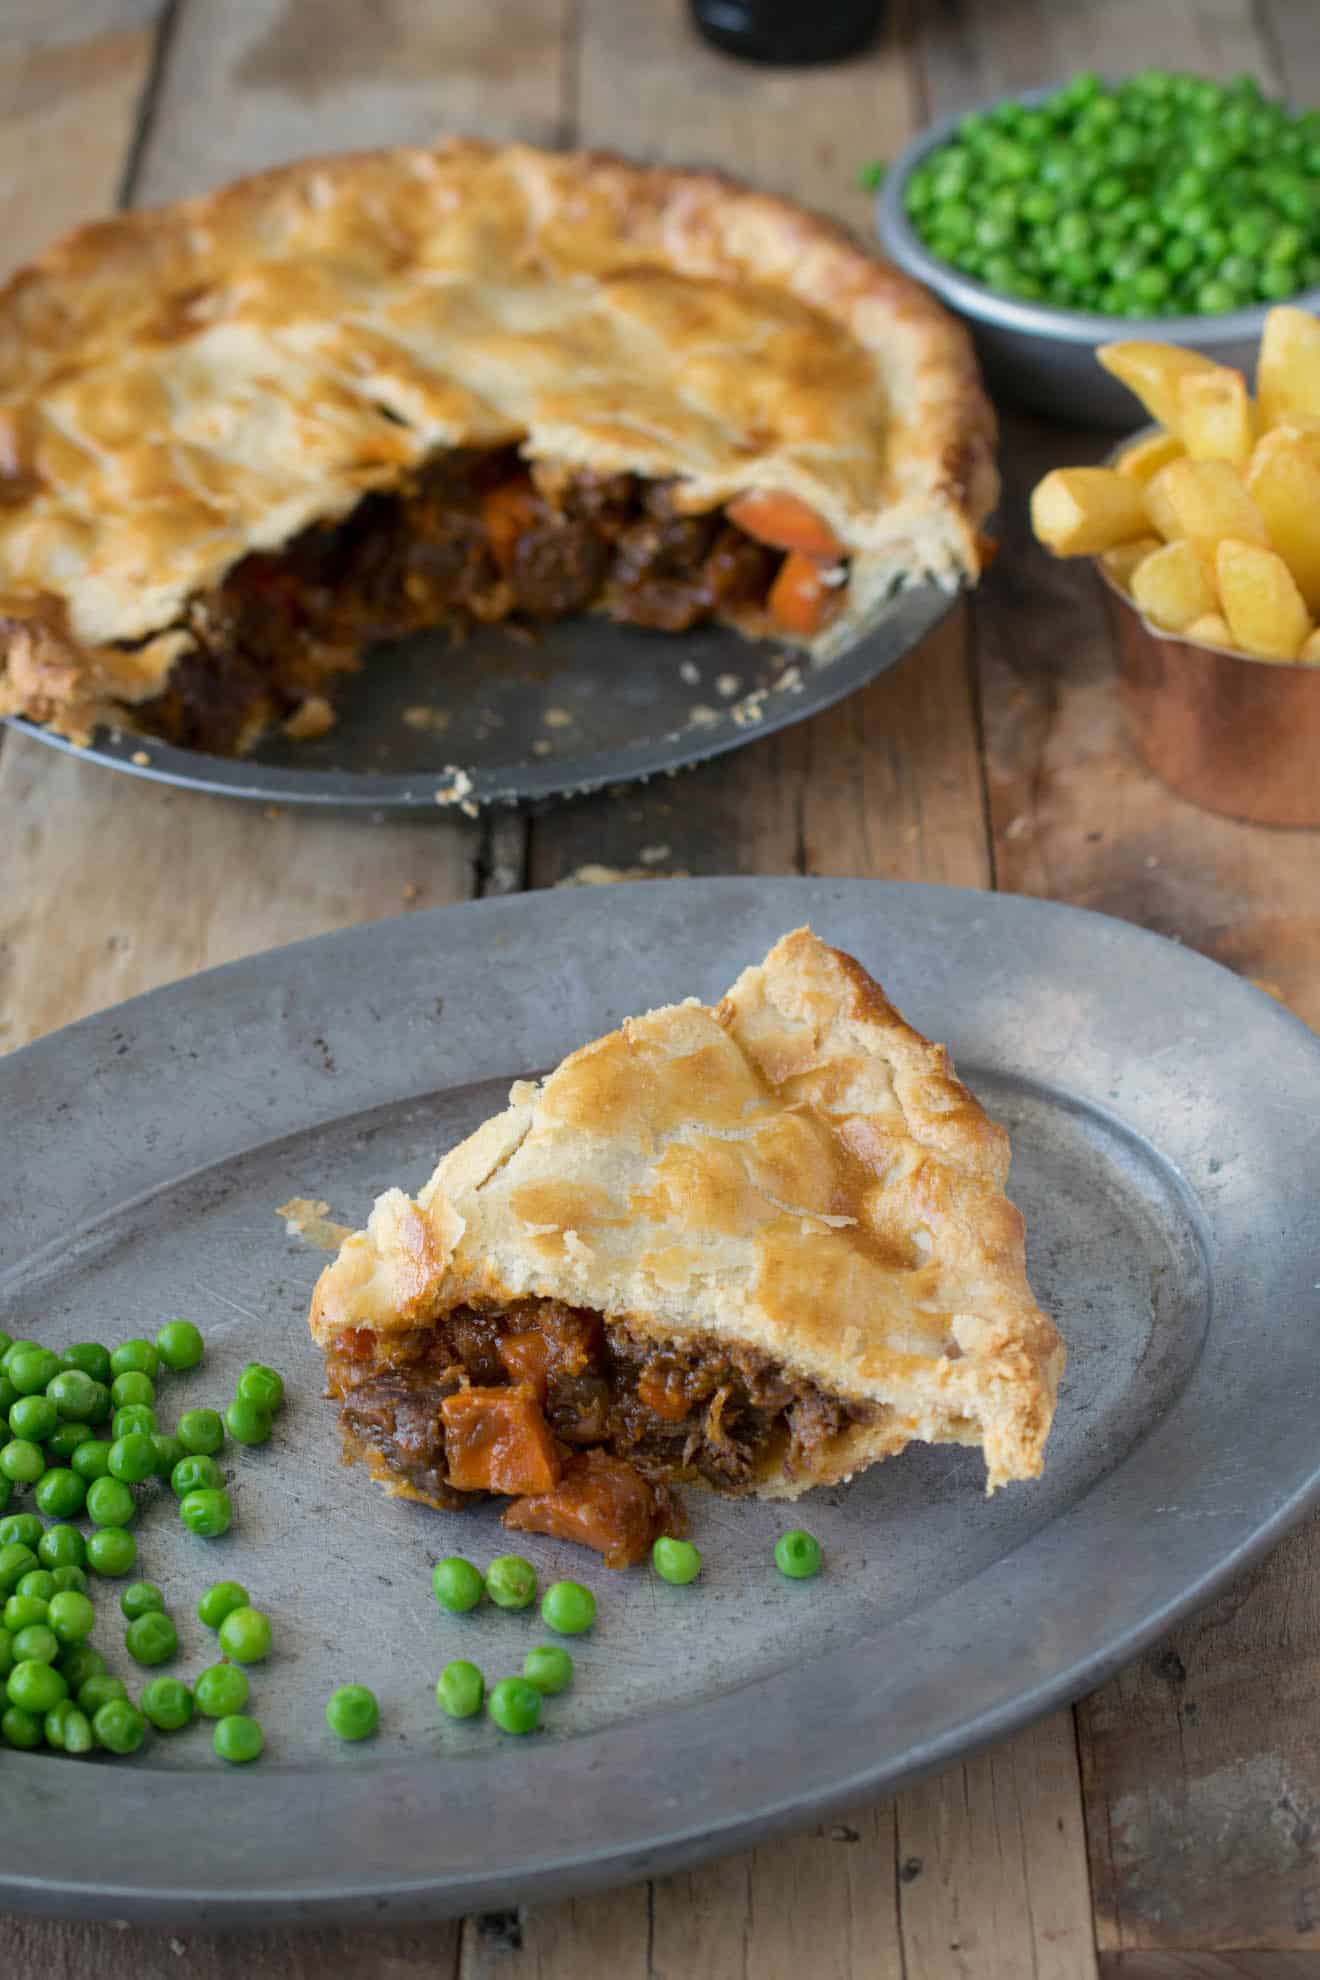 A slice of steak and ale pie on a plate with peas